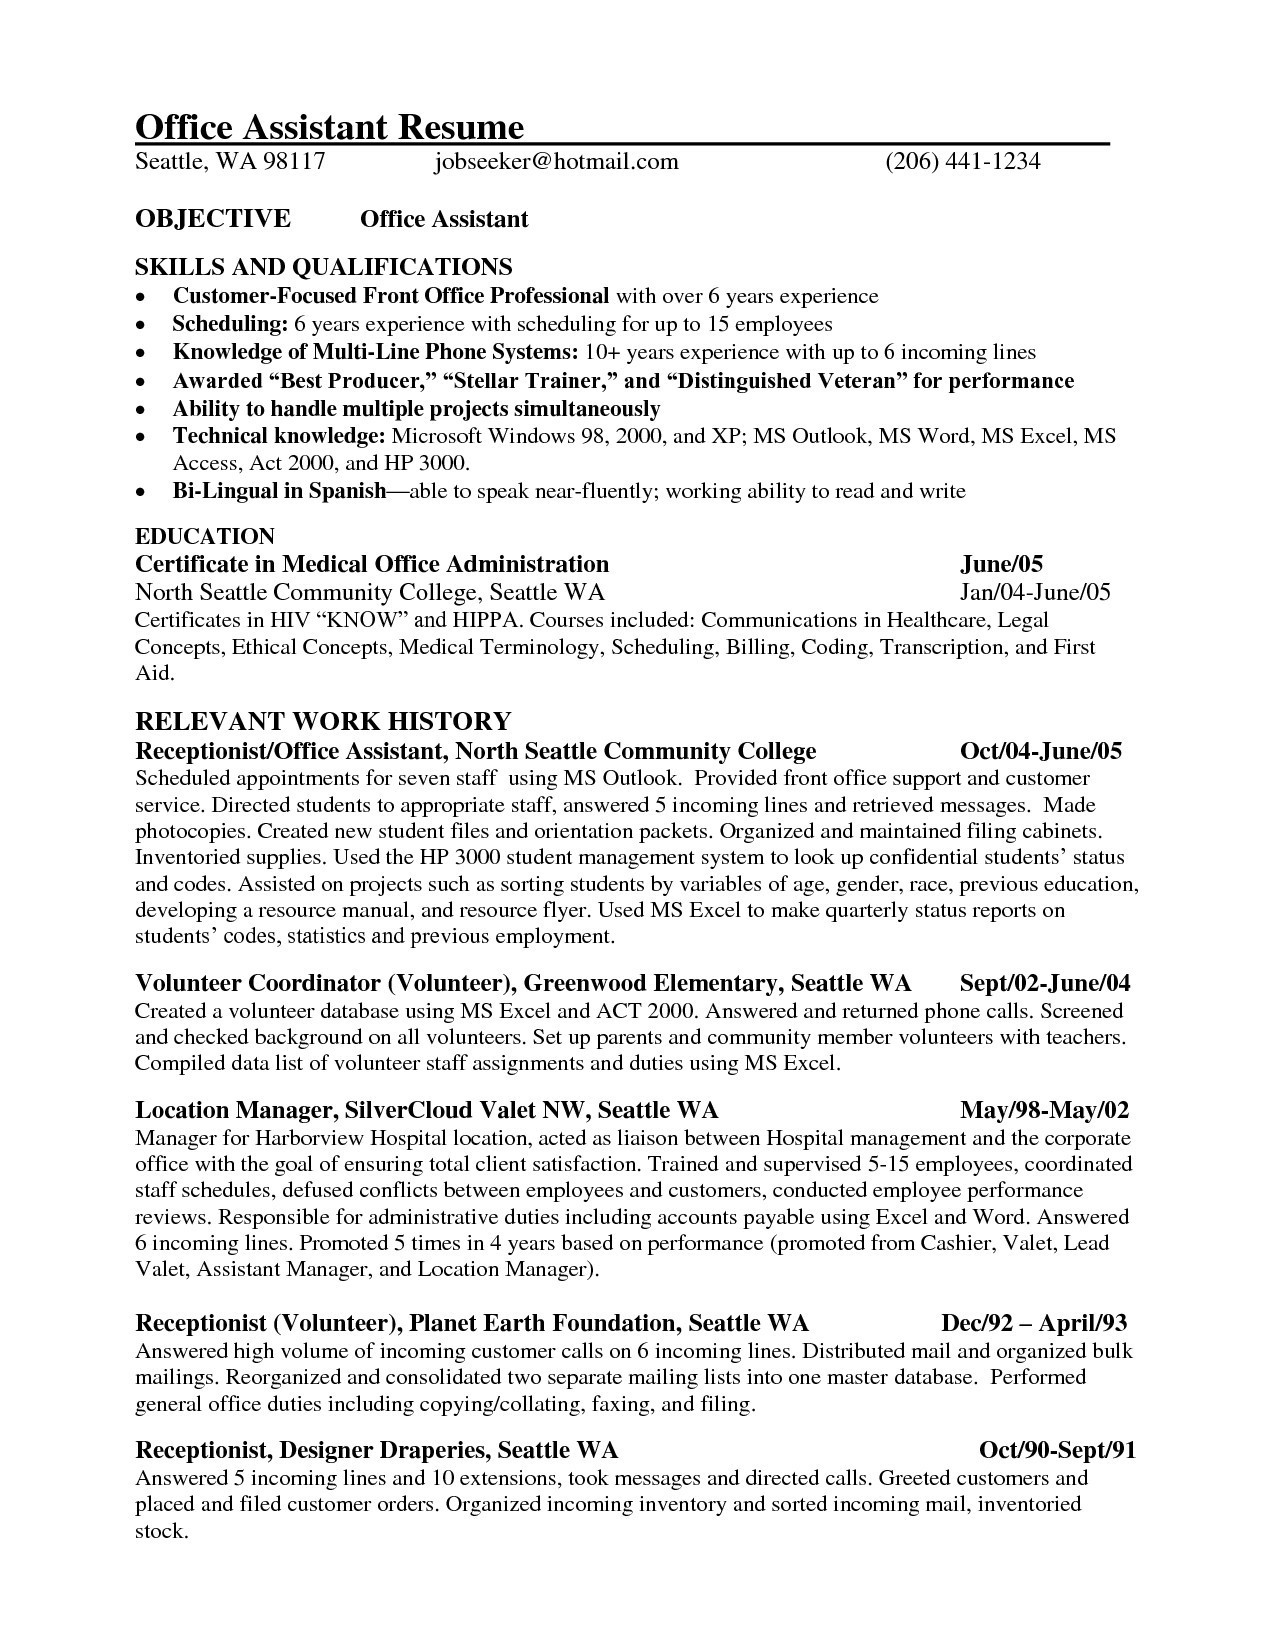 Medical Office Manager Resume - Medical Fice Manager Resume Examples New Fice Manager Job